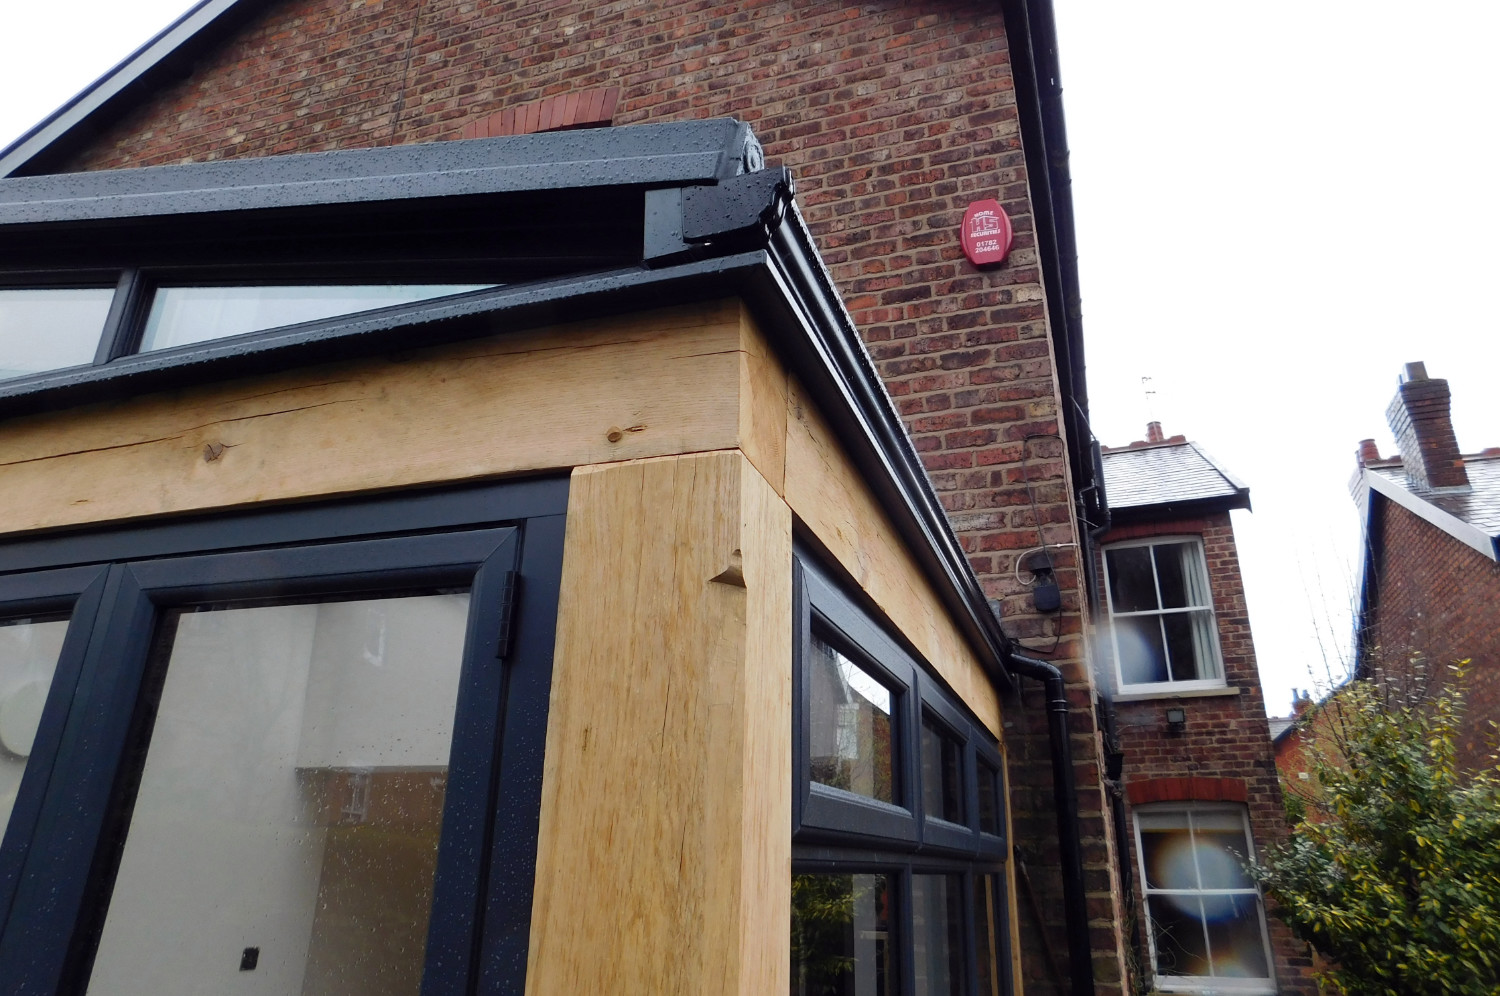 Kitchen extension, oak frame, conservatory style, modern interior fittings, Bell Walker, Altrincham, Trafford, Greater Manchester